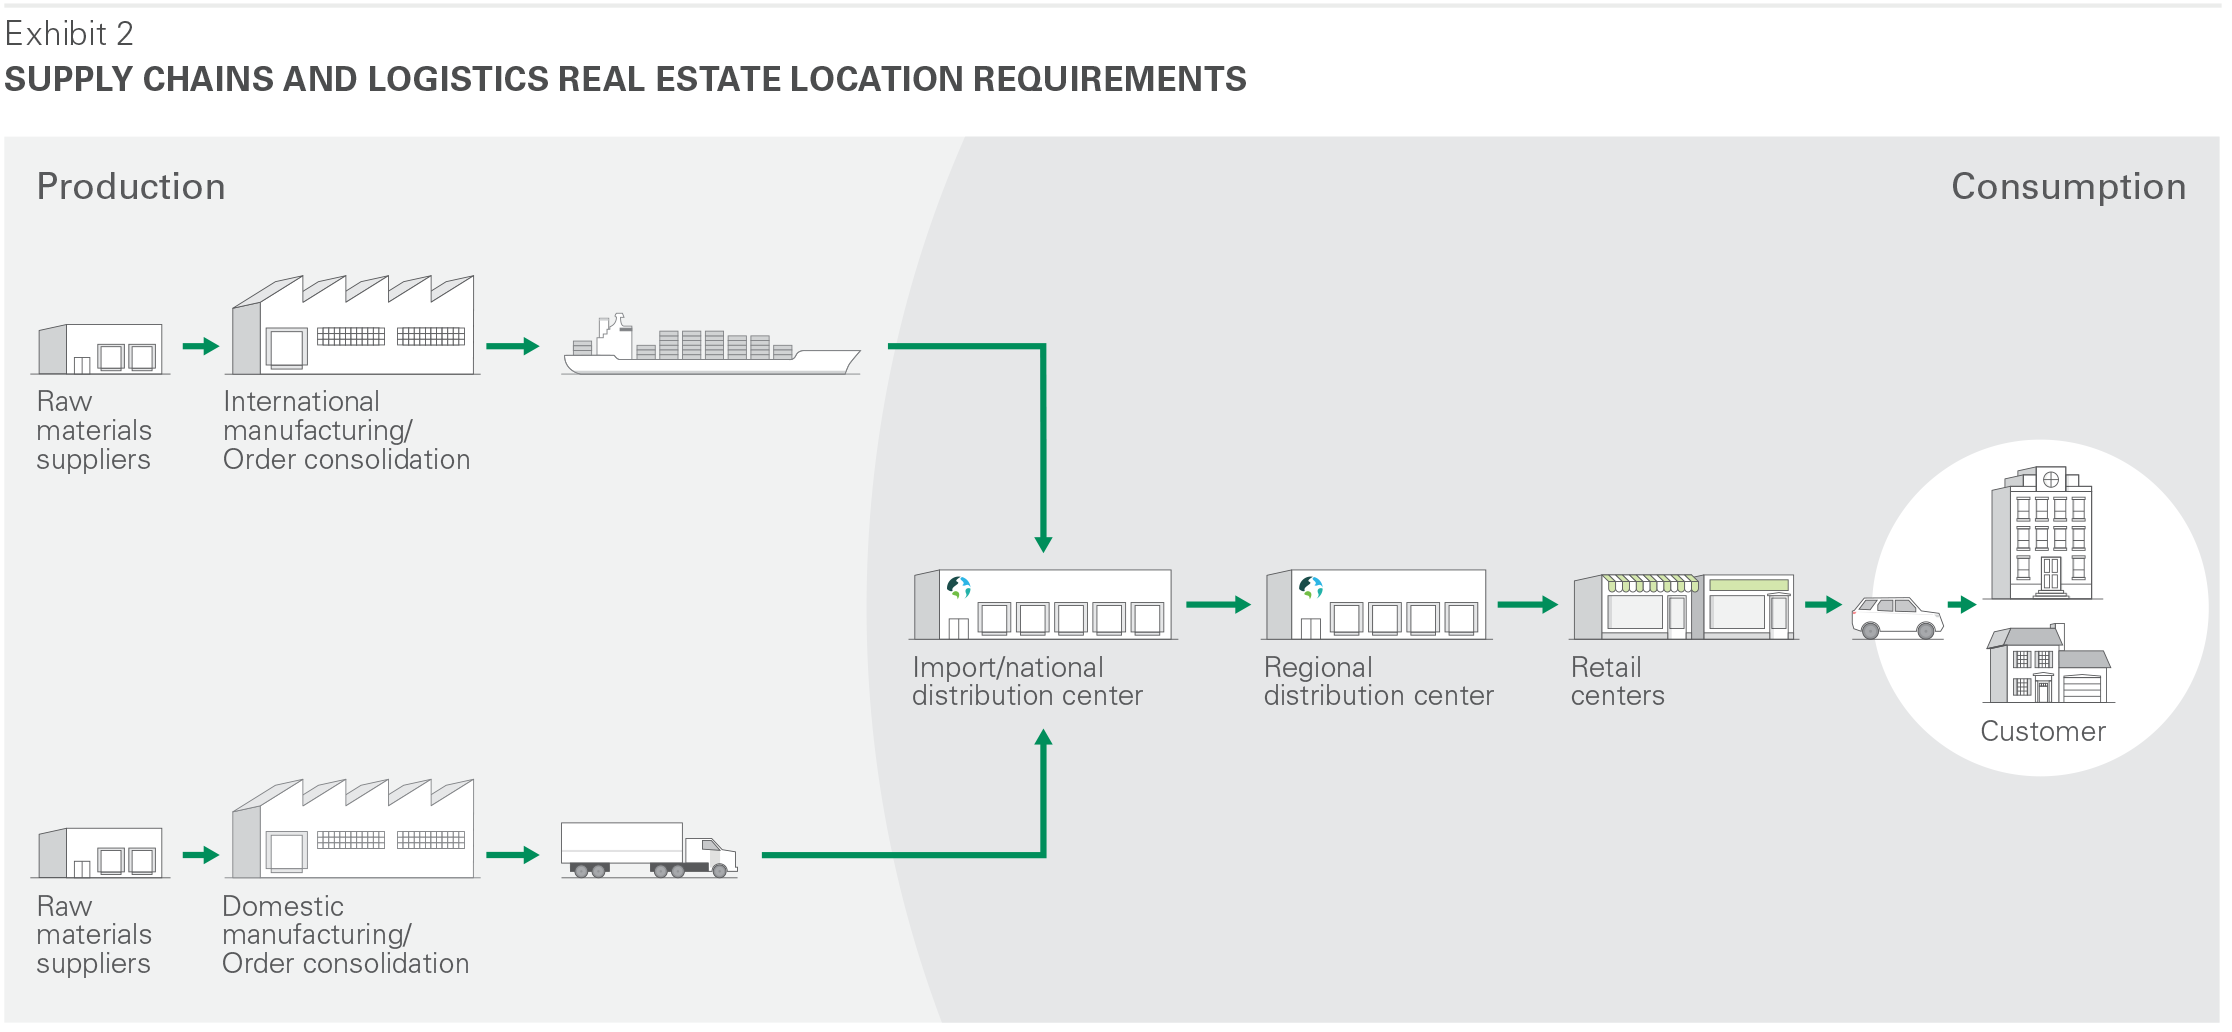 Supply Chains and Logistics Real Estate Location Requirements